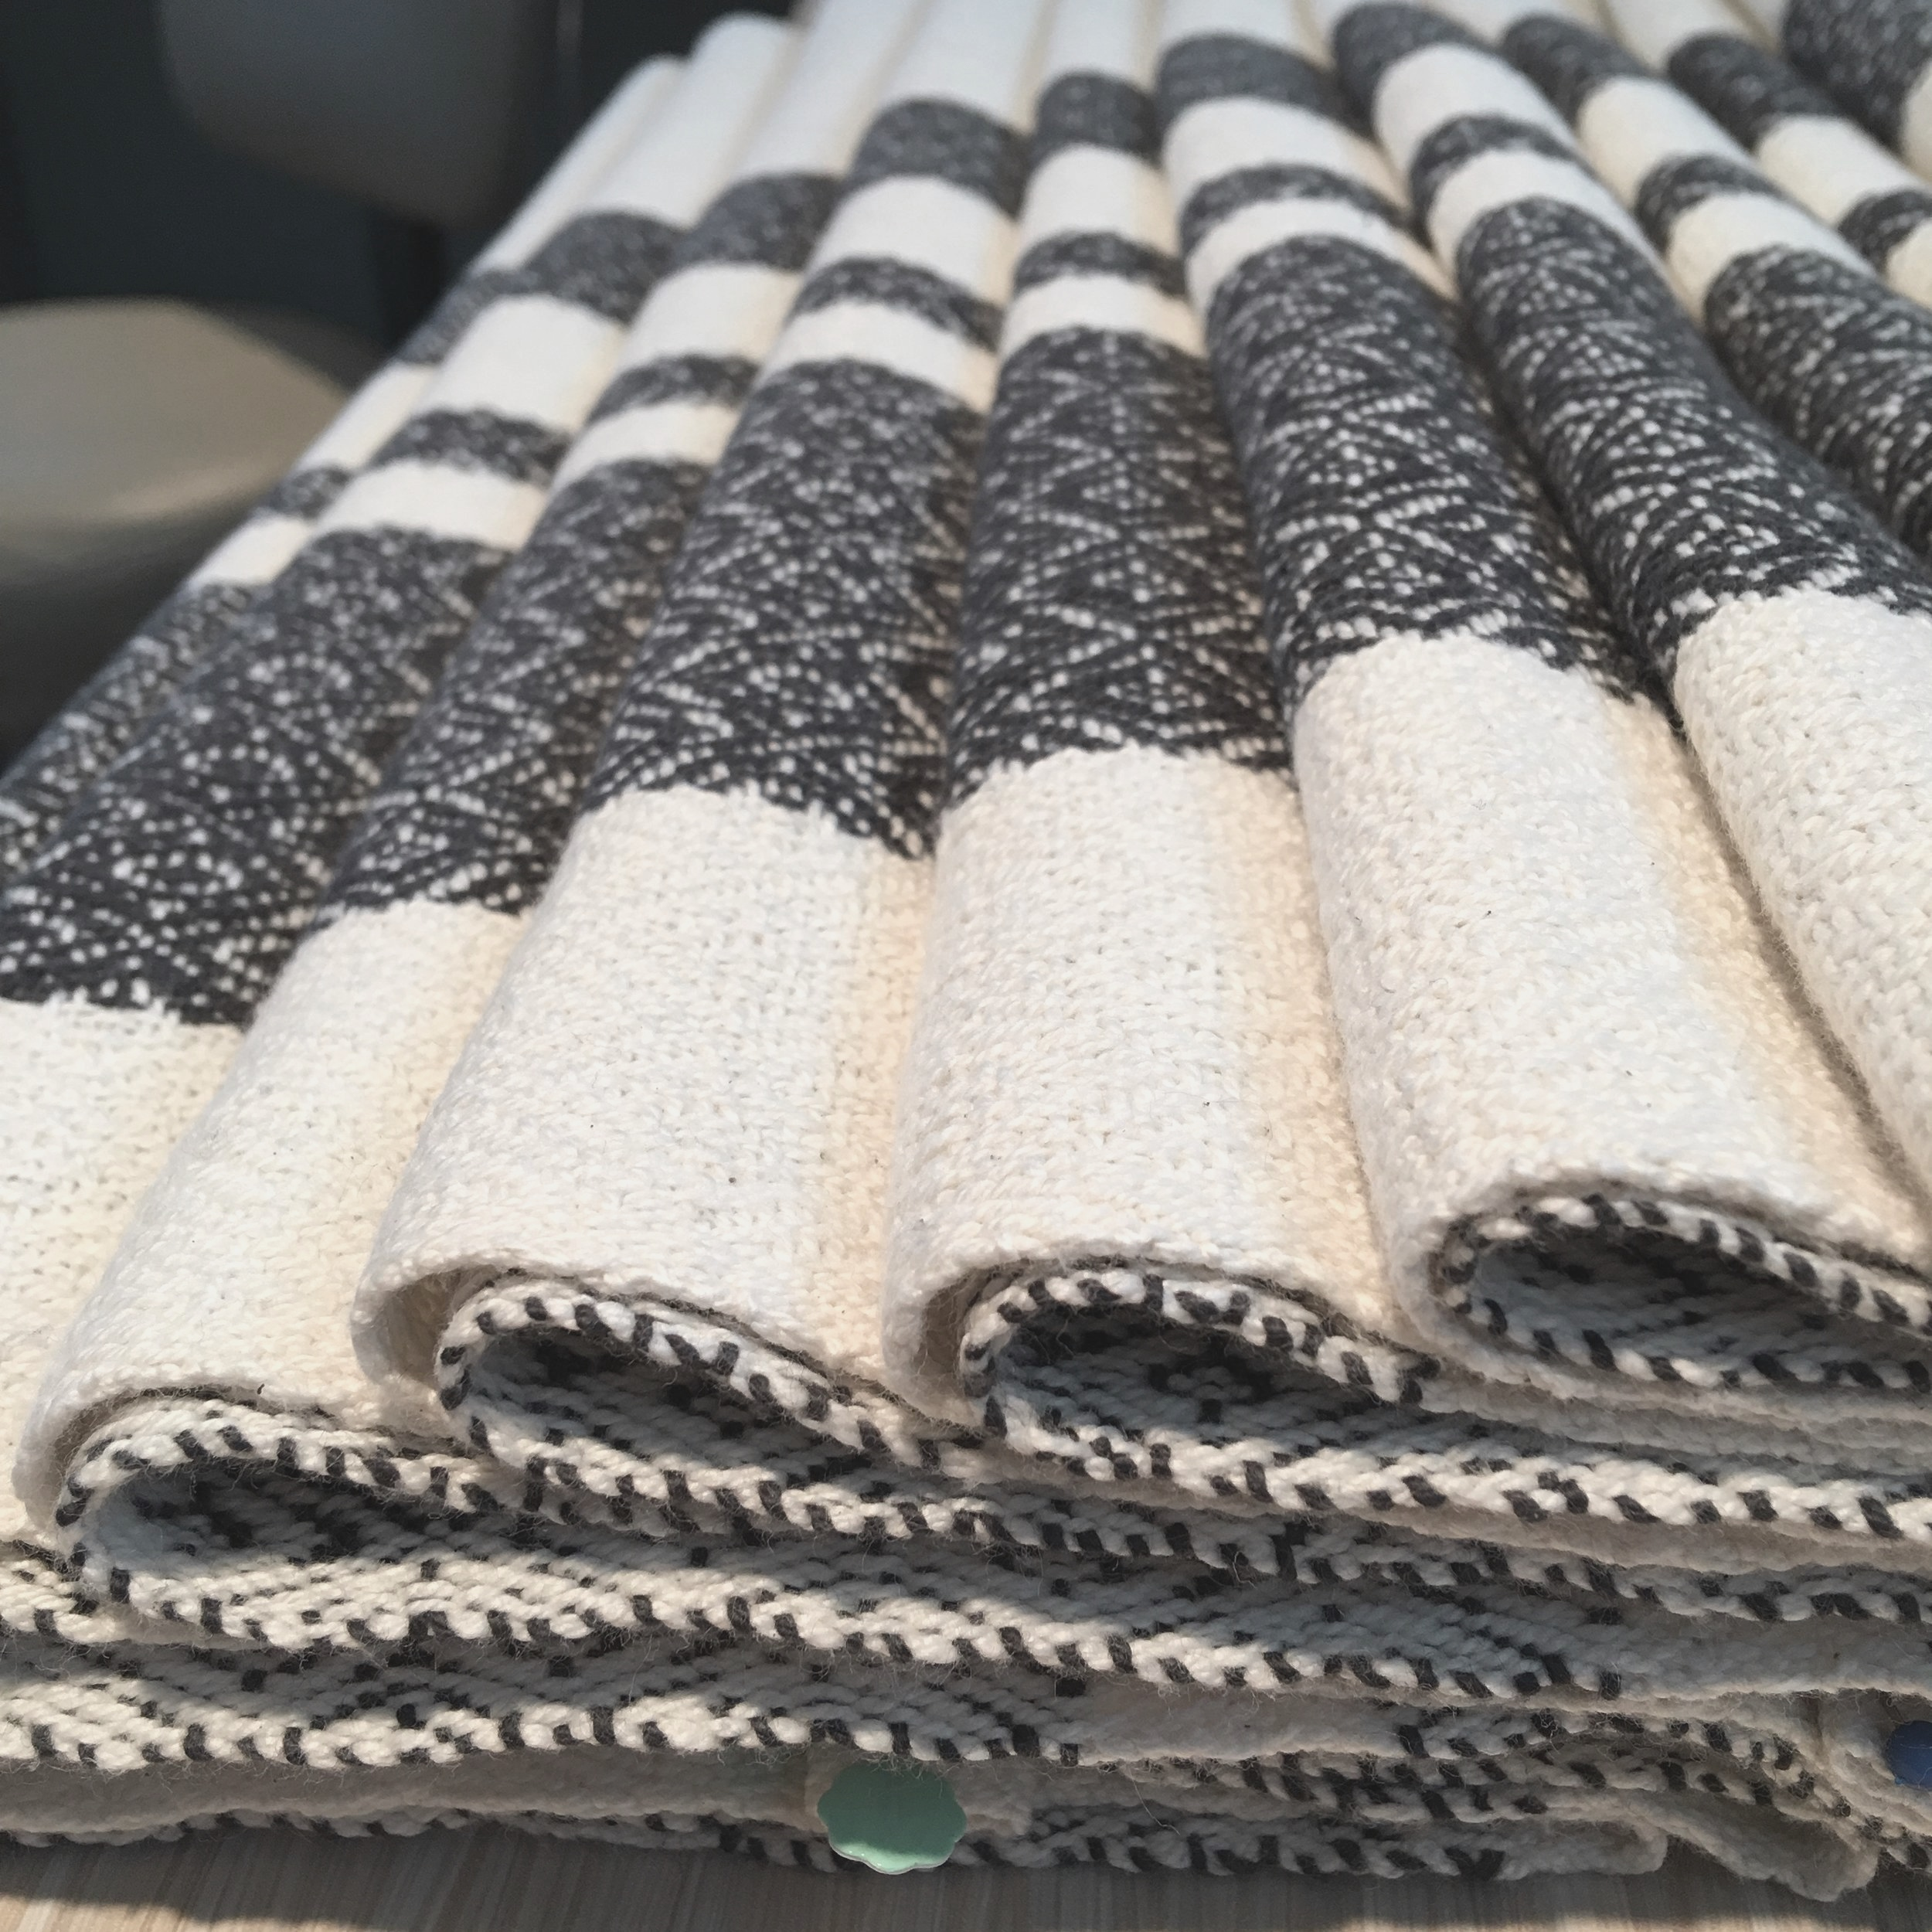 Final Finishing…. - Pressing, pinning and lots of steam….. Machine stitched hems, the only mechanized step used through the whole process. These towels are hard at work in your home, so we believe machine stitching is the best type of hemming to ensure longevity.